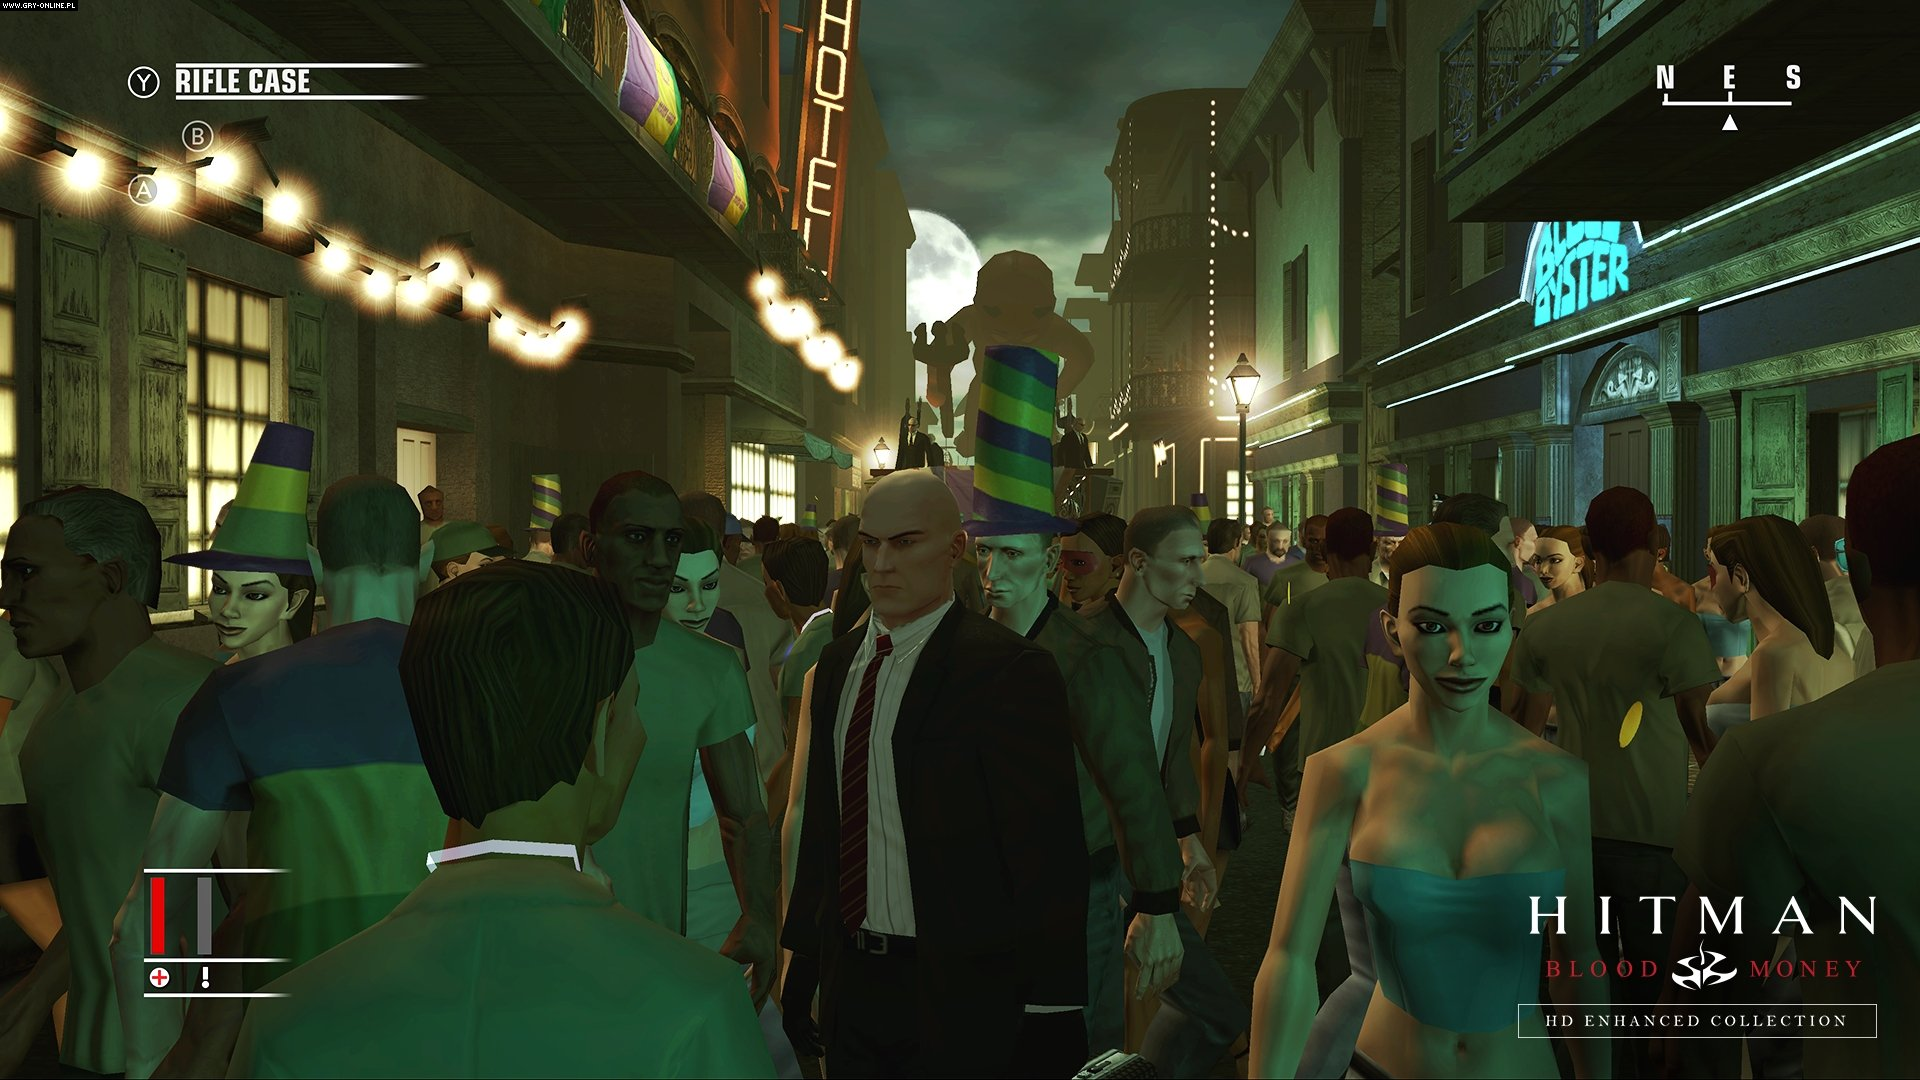 Hitman HD Enhanced Collection PS4, XONE Games Image 12/16, IO Interactive